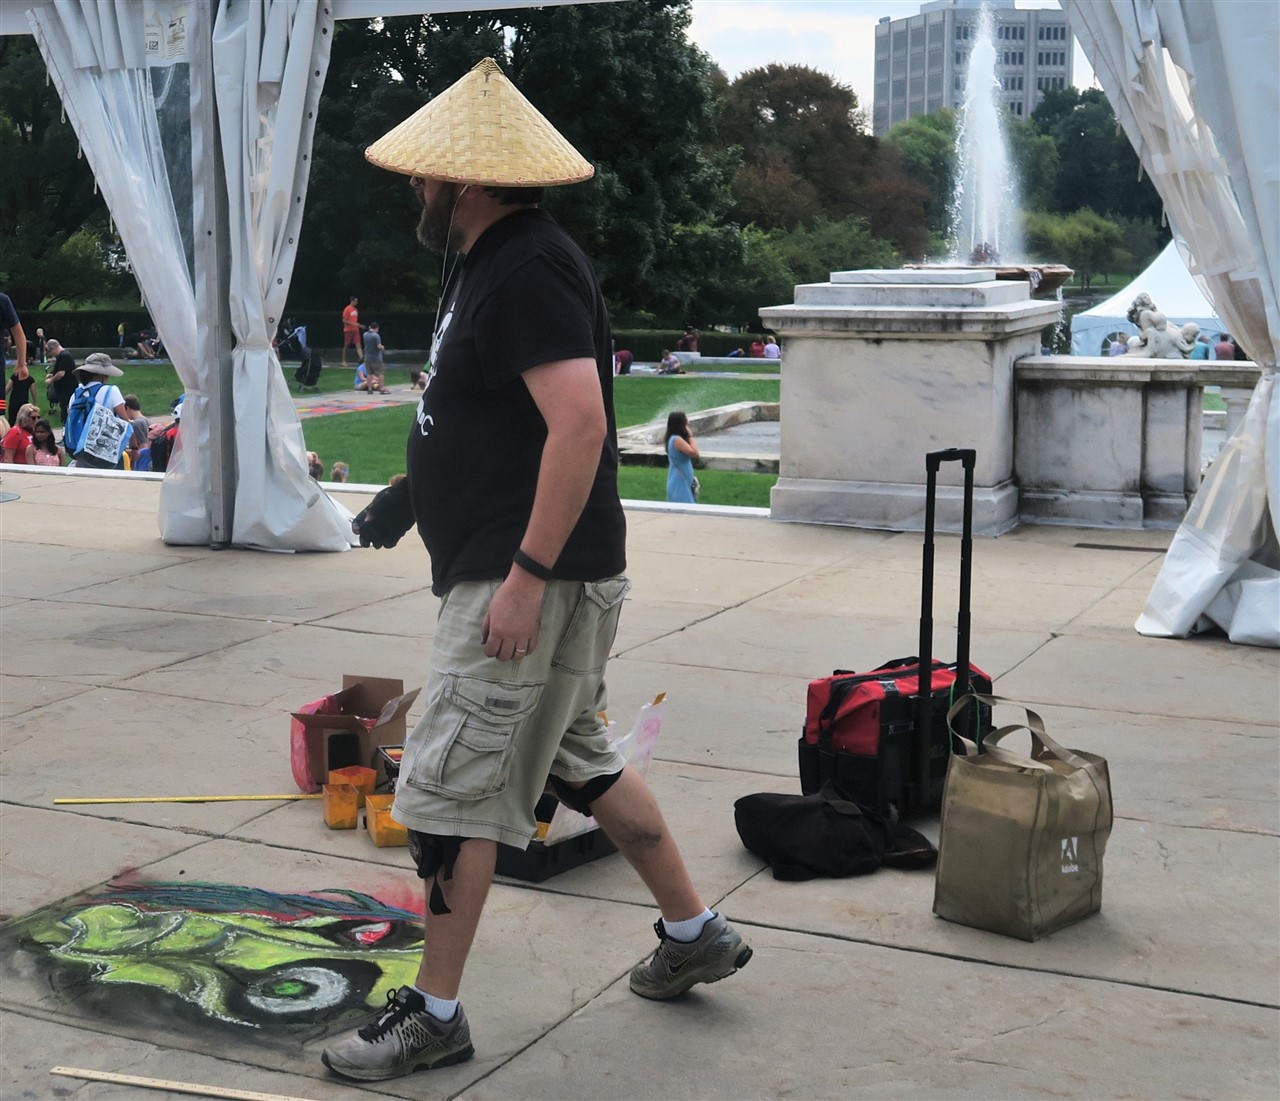 2016 09 18 7 Cleveland Museum of Art Chalk Art.jpg